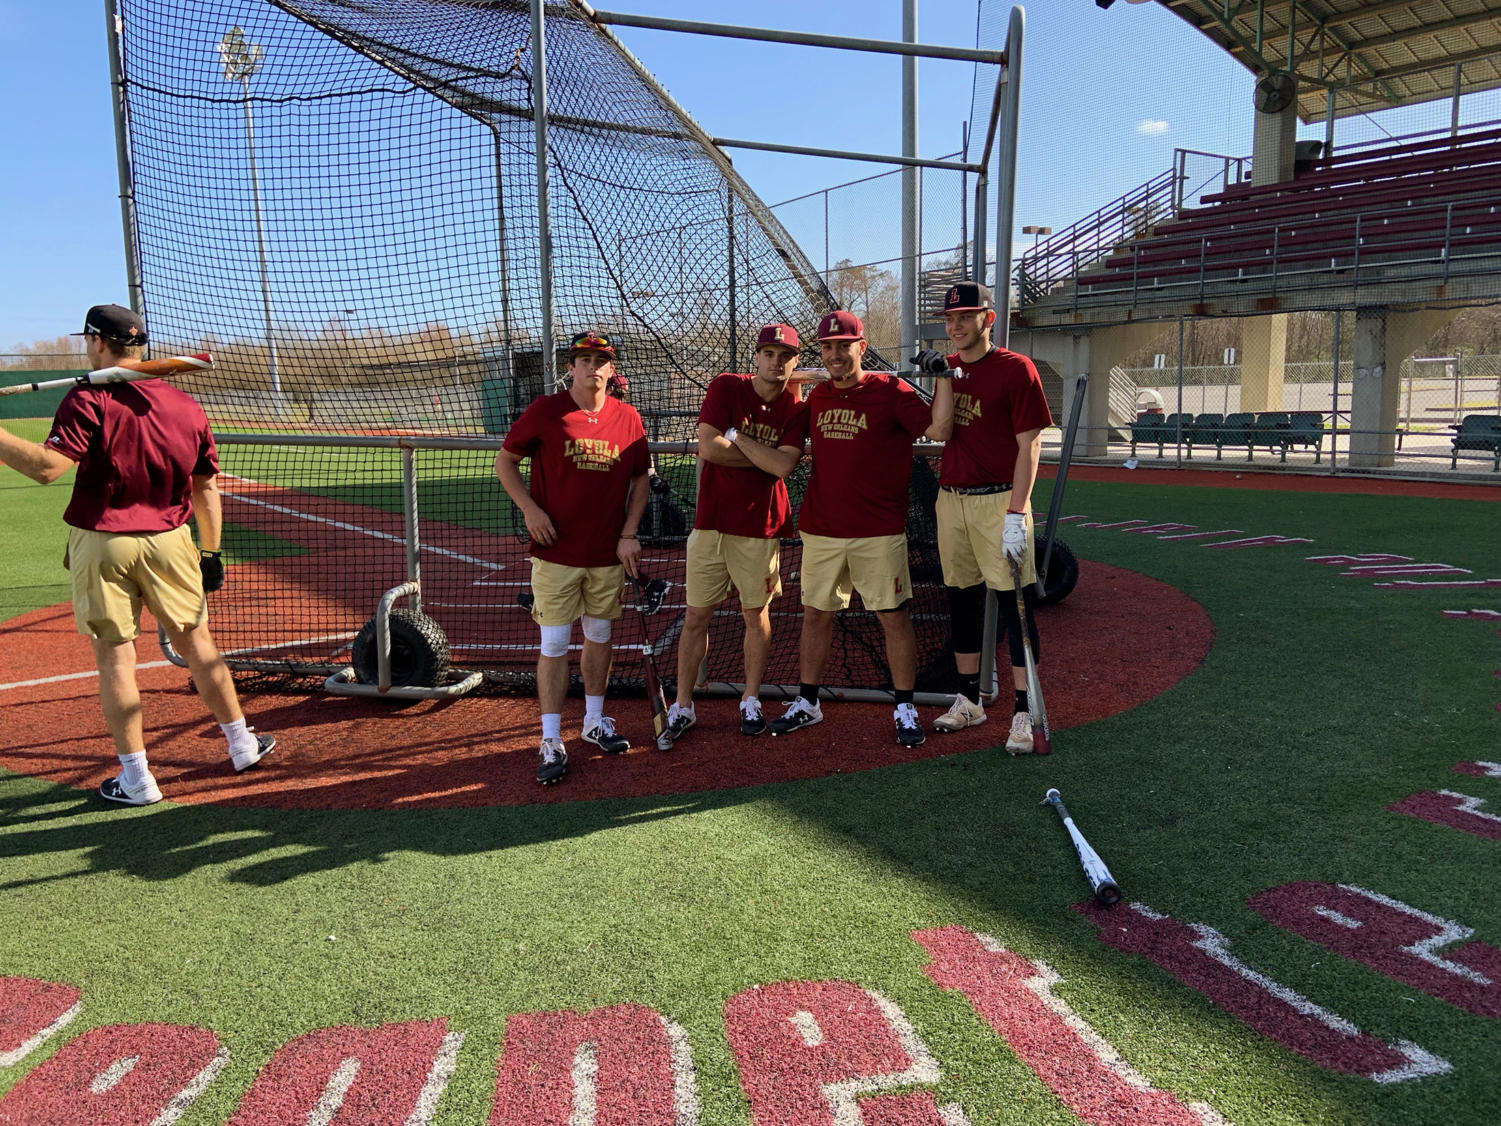 The 2019 baseball team practices at Segnette Field at the Alario Center. Photo credit: Andrew Wellmann